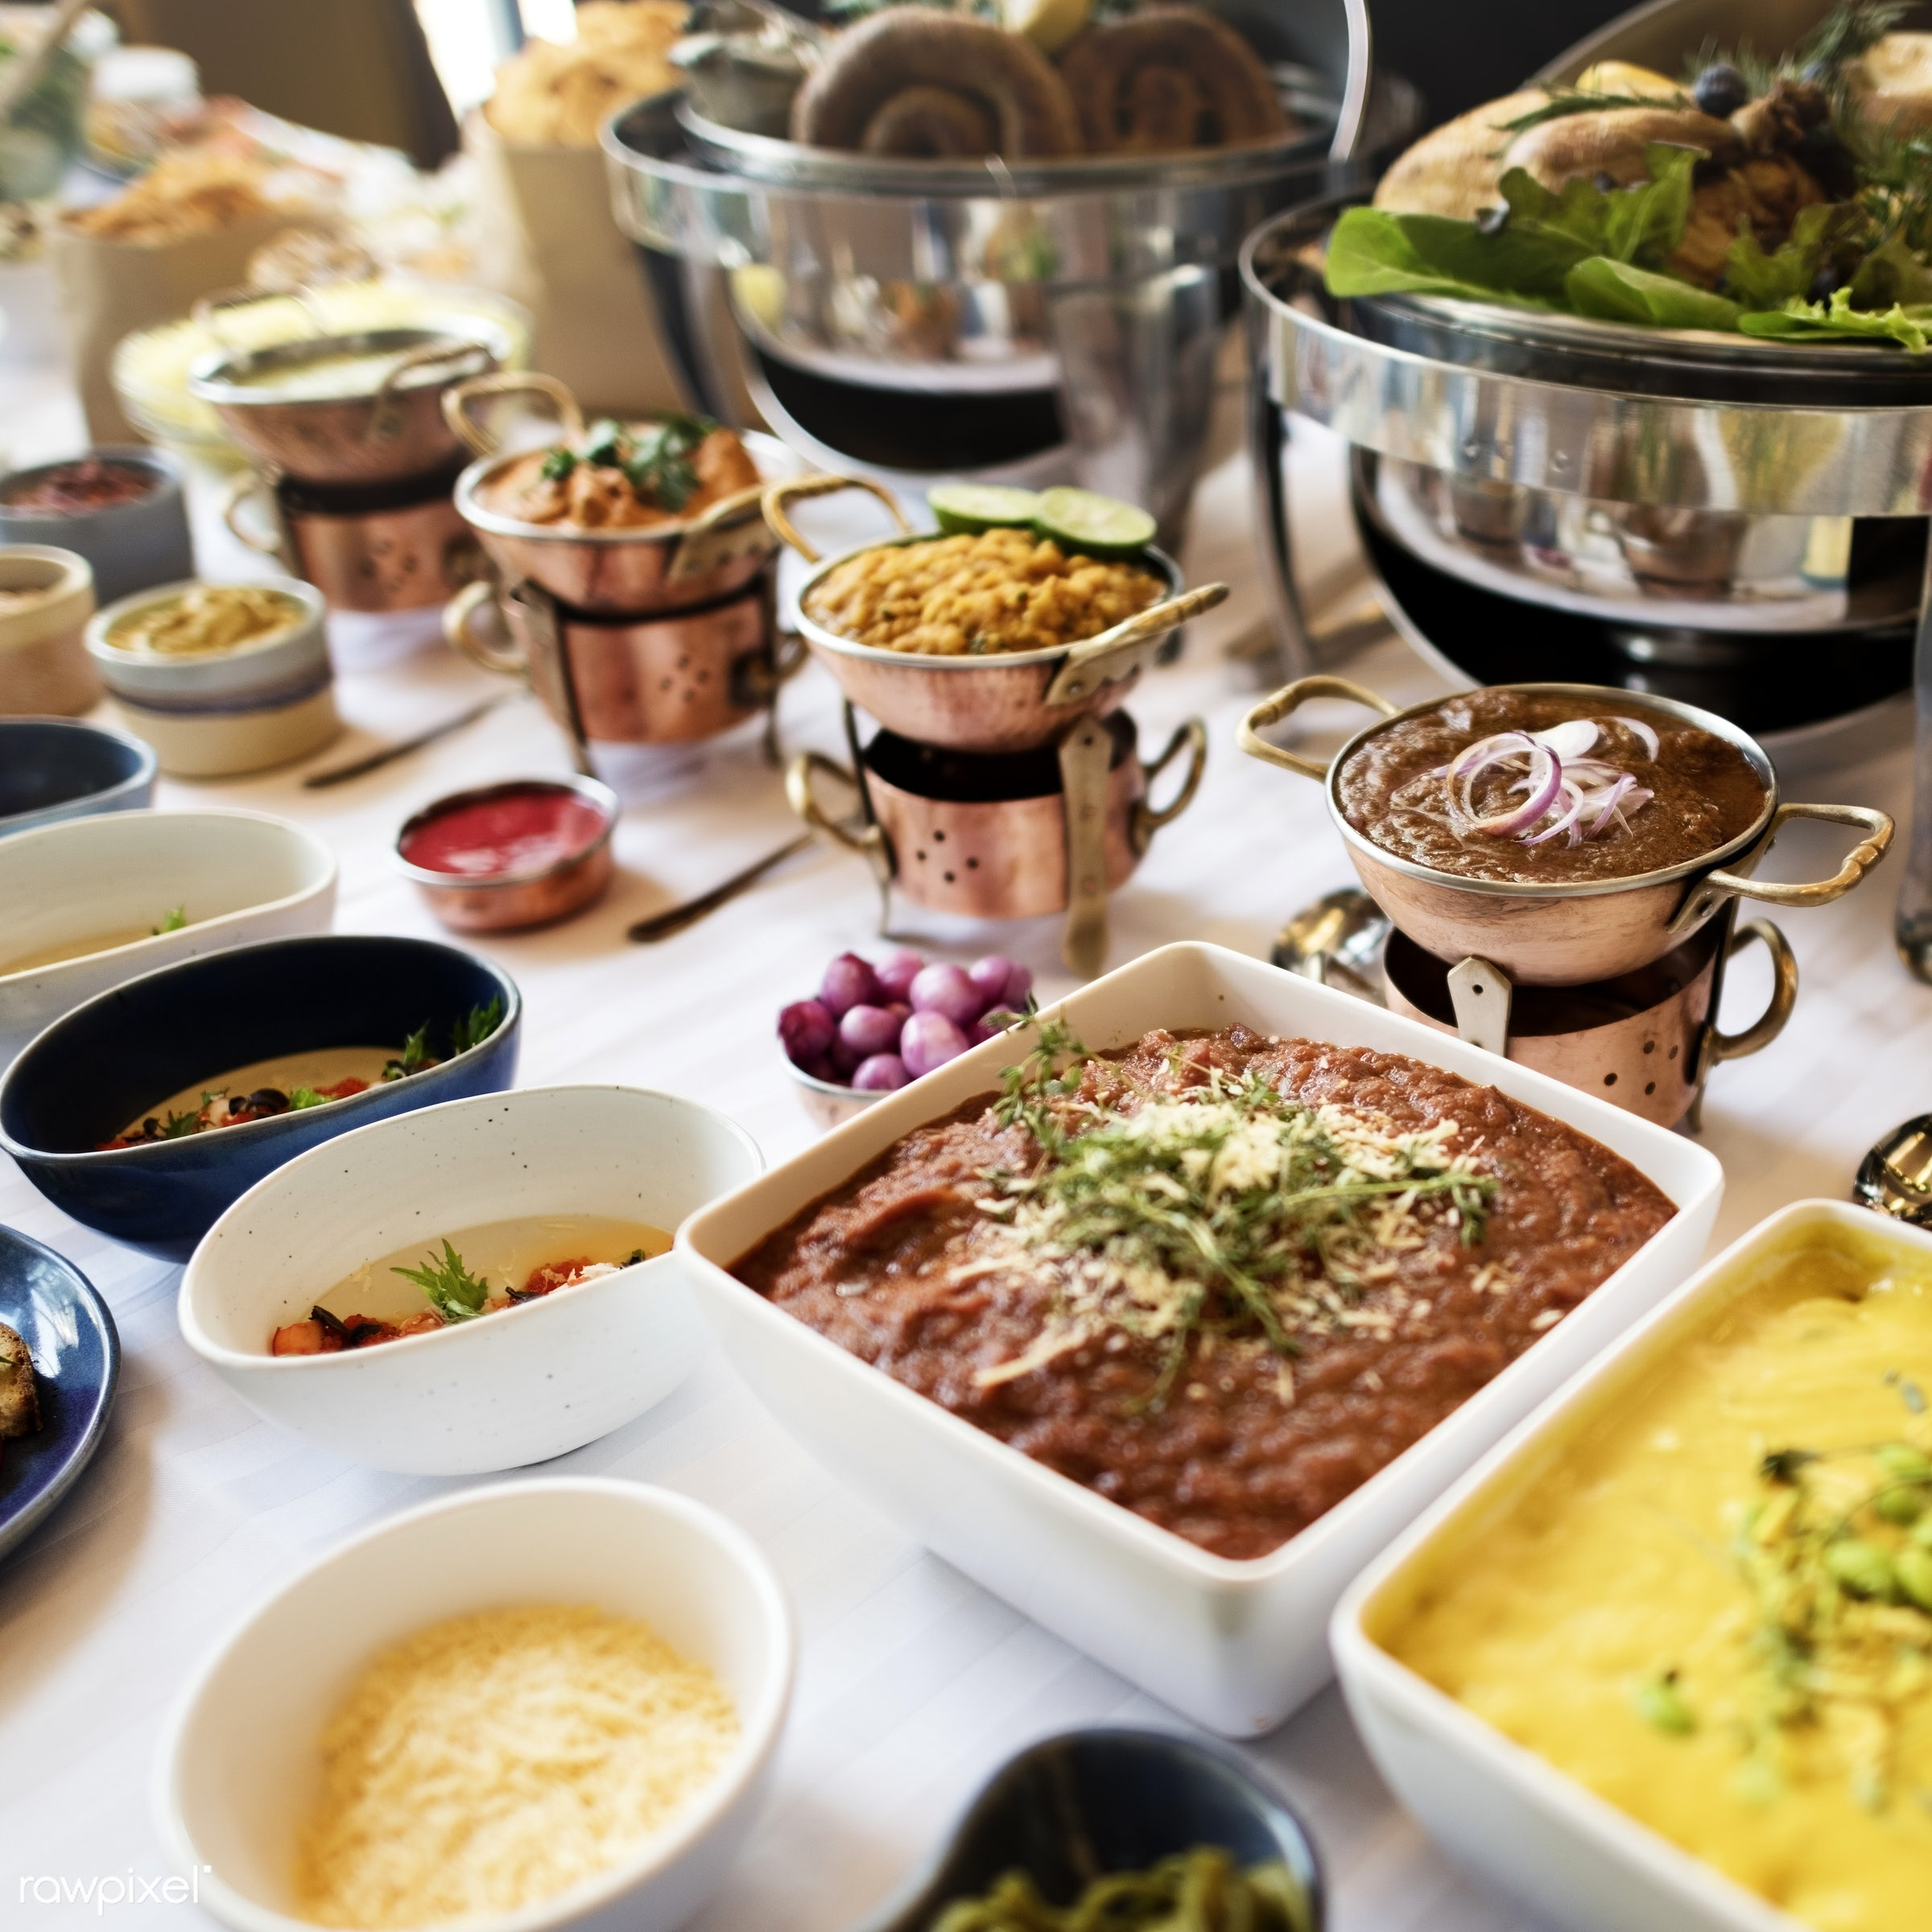 asian food, brunch, buffet, cafe, catering, celebration, cheering, cheers, choice, crowd, dessert, diet, dining, dinner,...